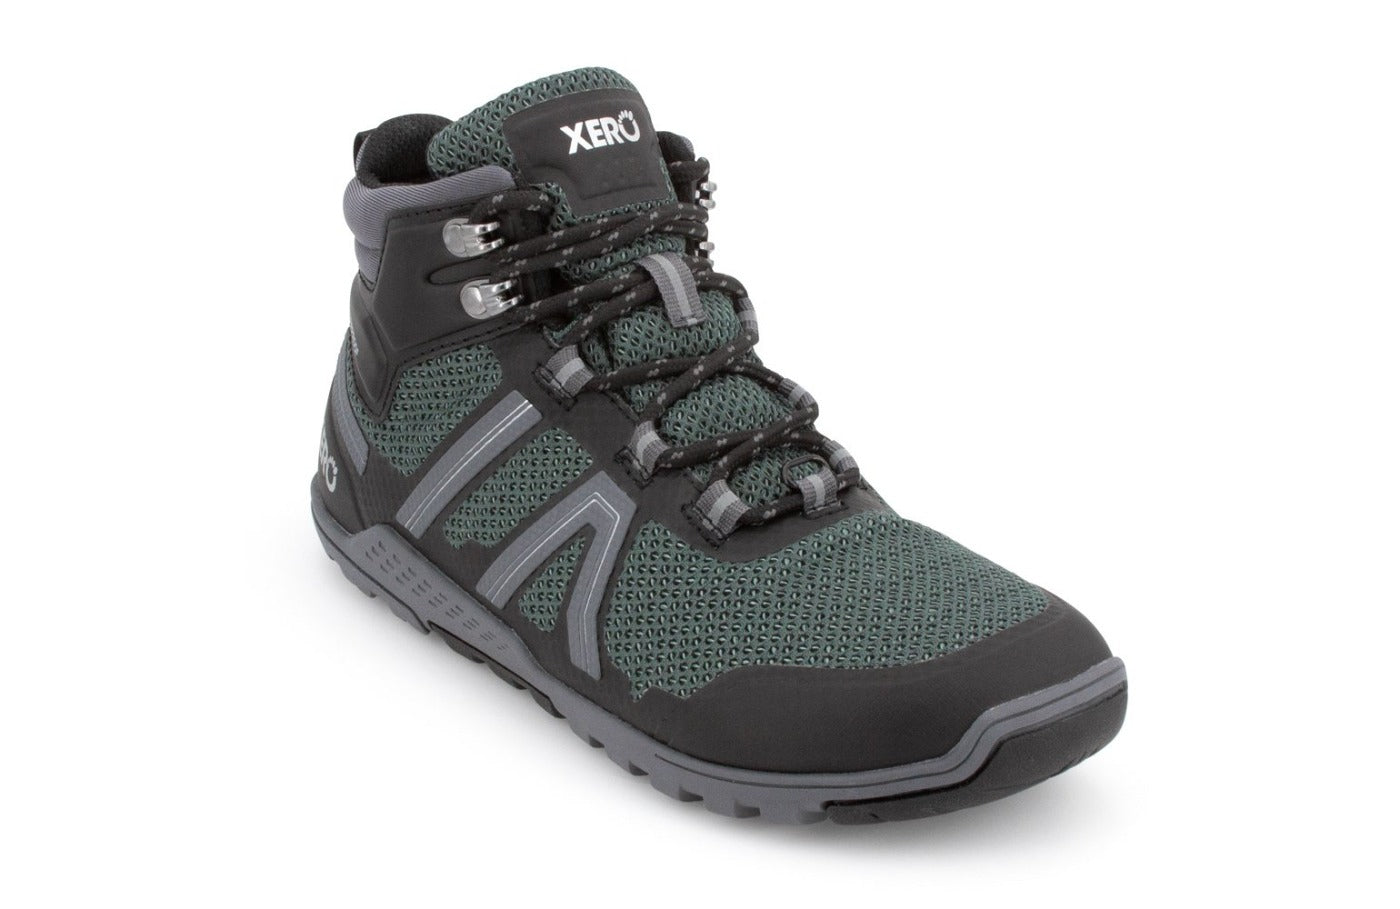 New Xero Shoes Xcursion Fusion Spruce Women Hiking Trail Running Outdoors